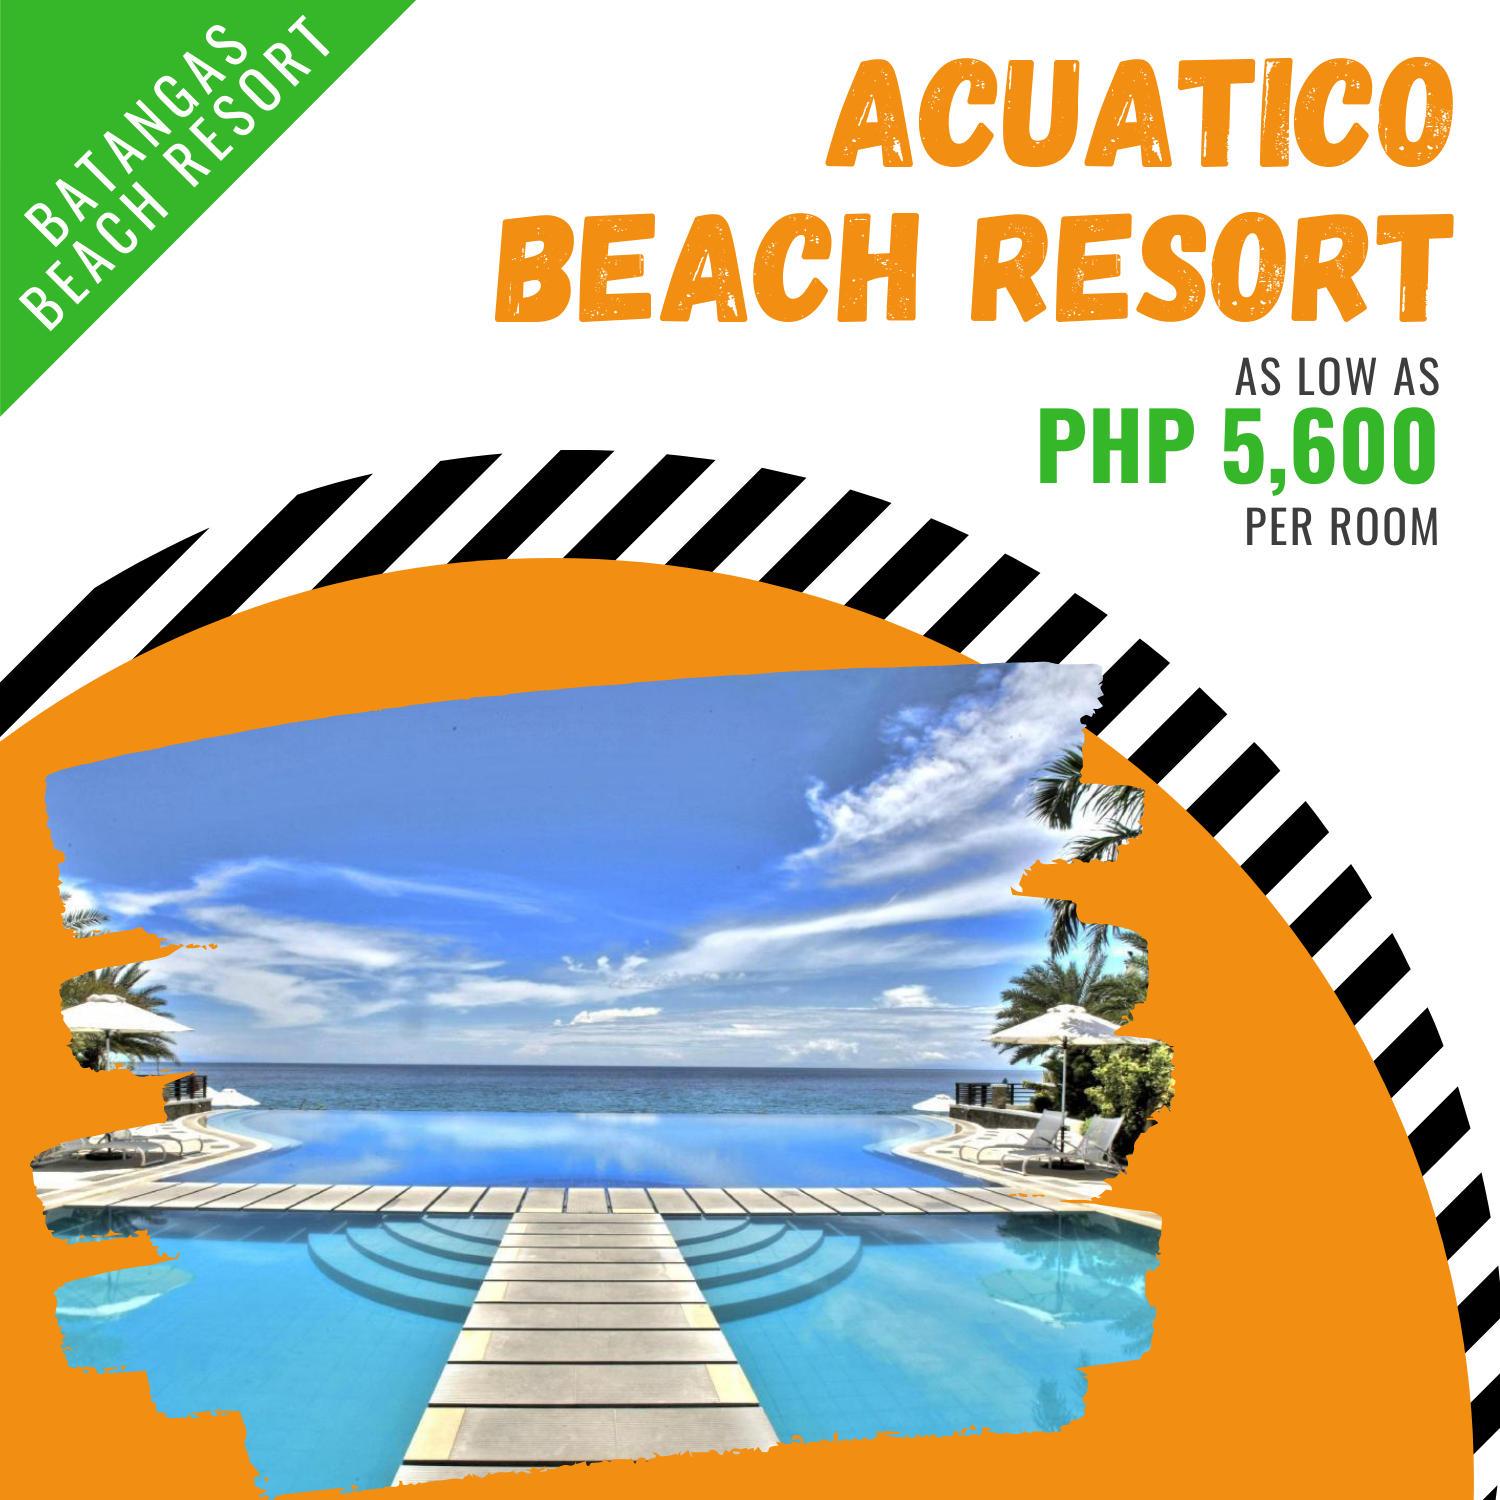 Acuatico Beach Resort, Batangas